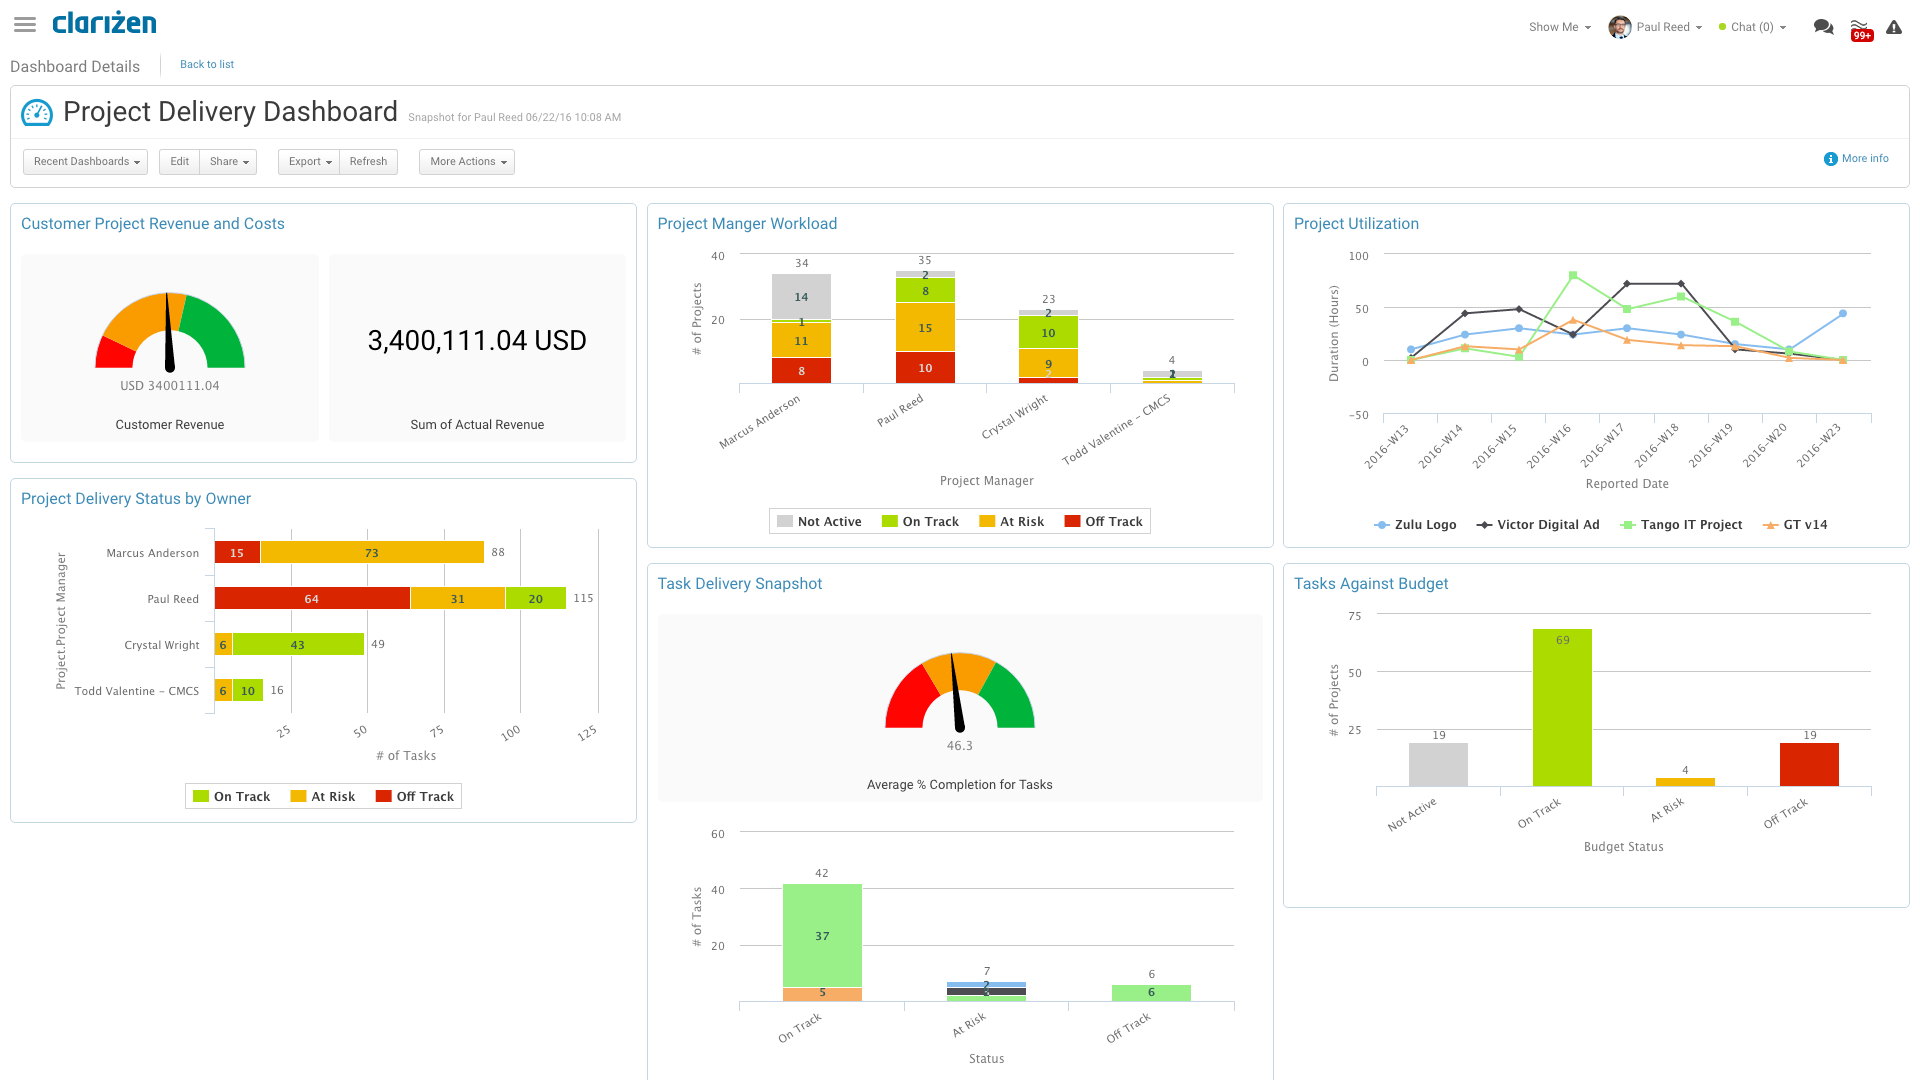 Project delivery dashboard